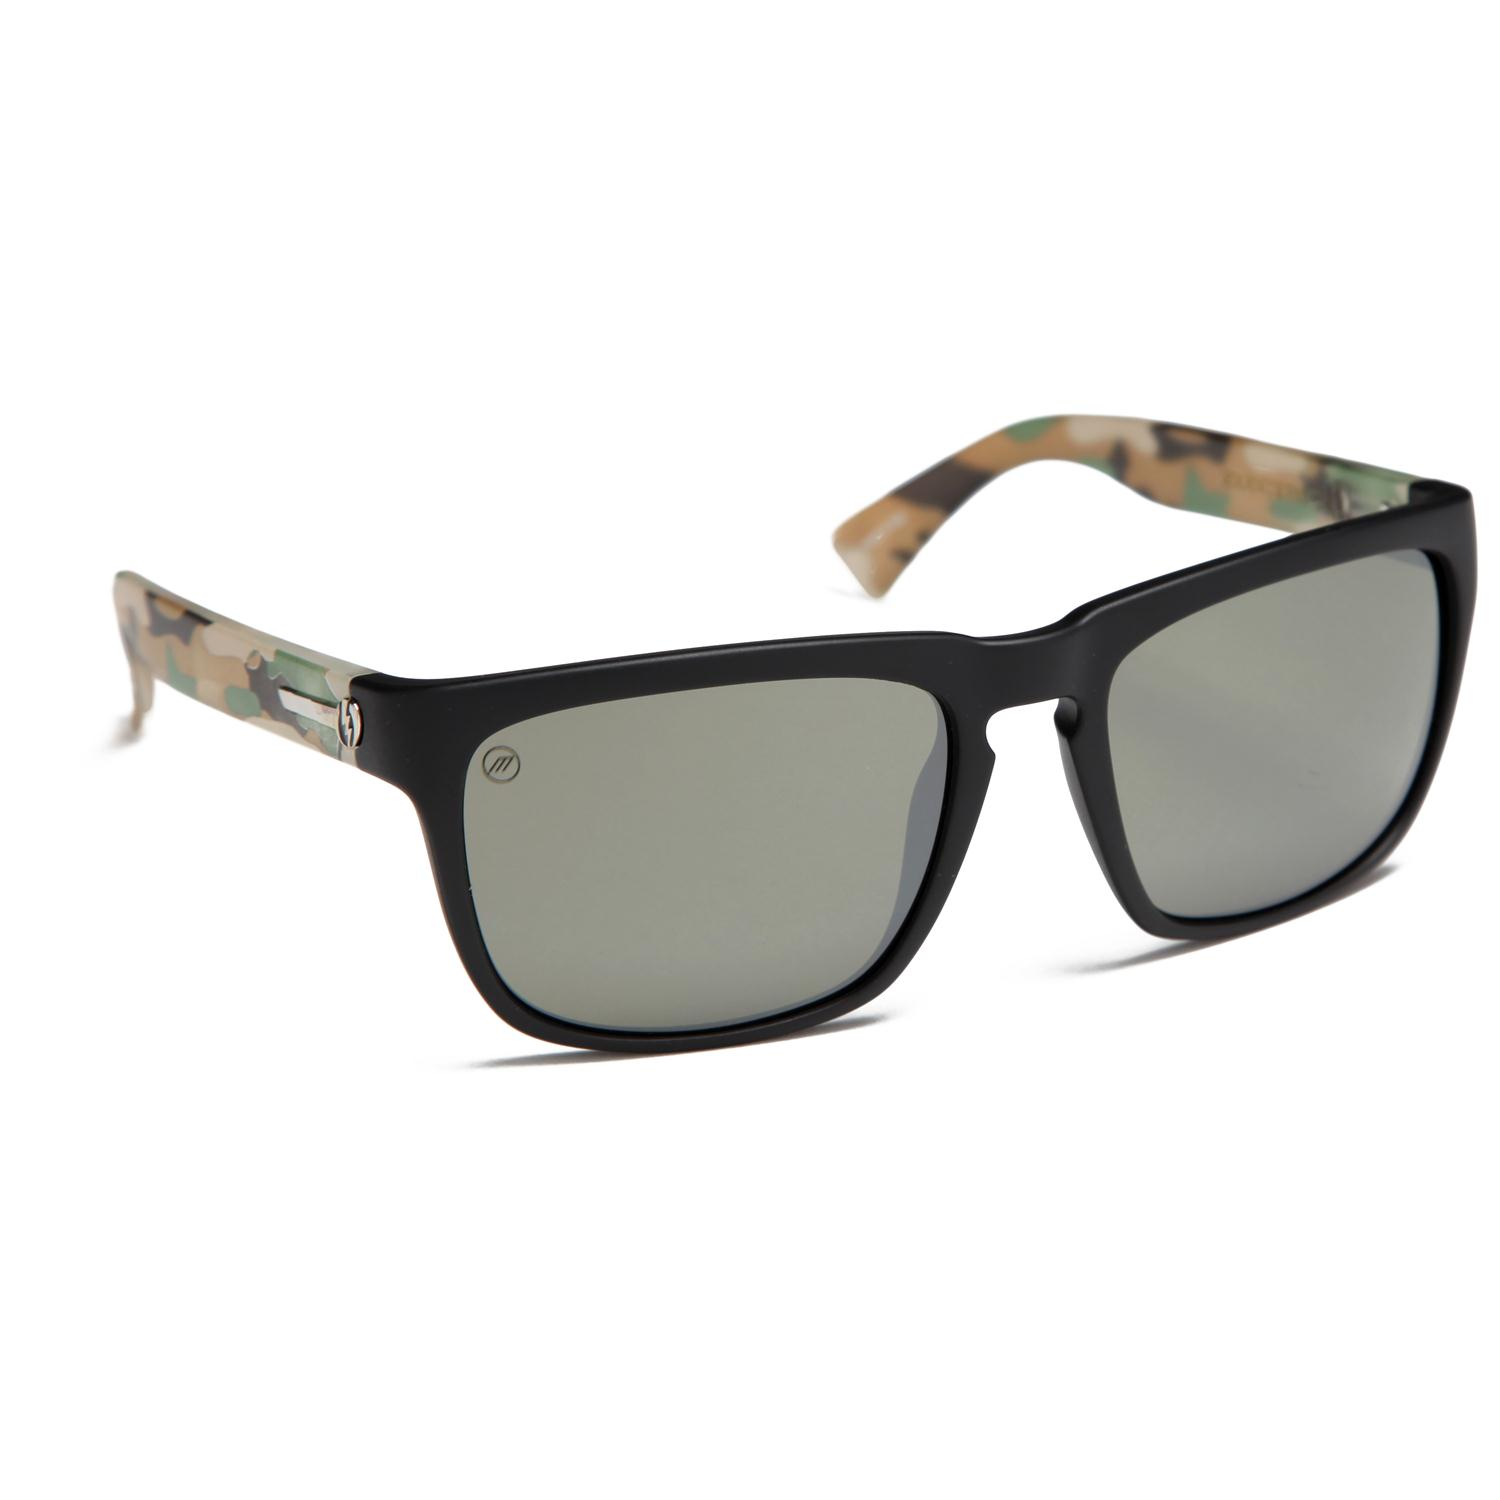 electric knoxville sunglasses evo outlet